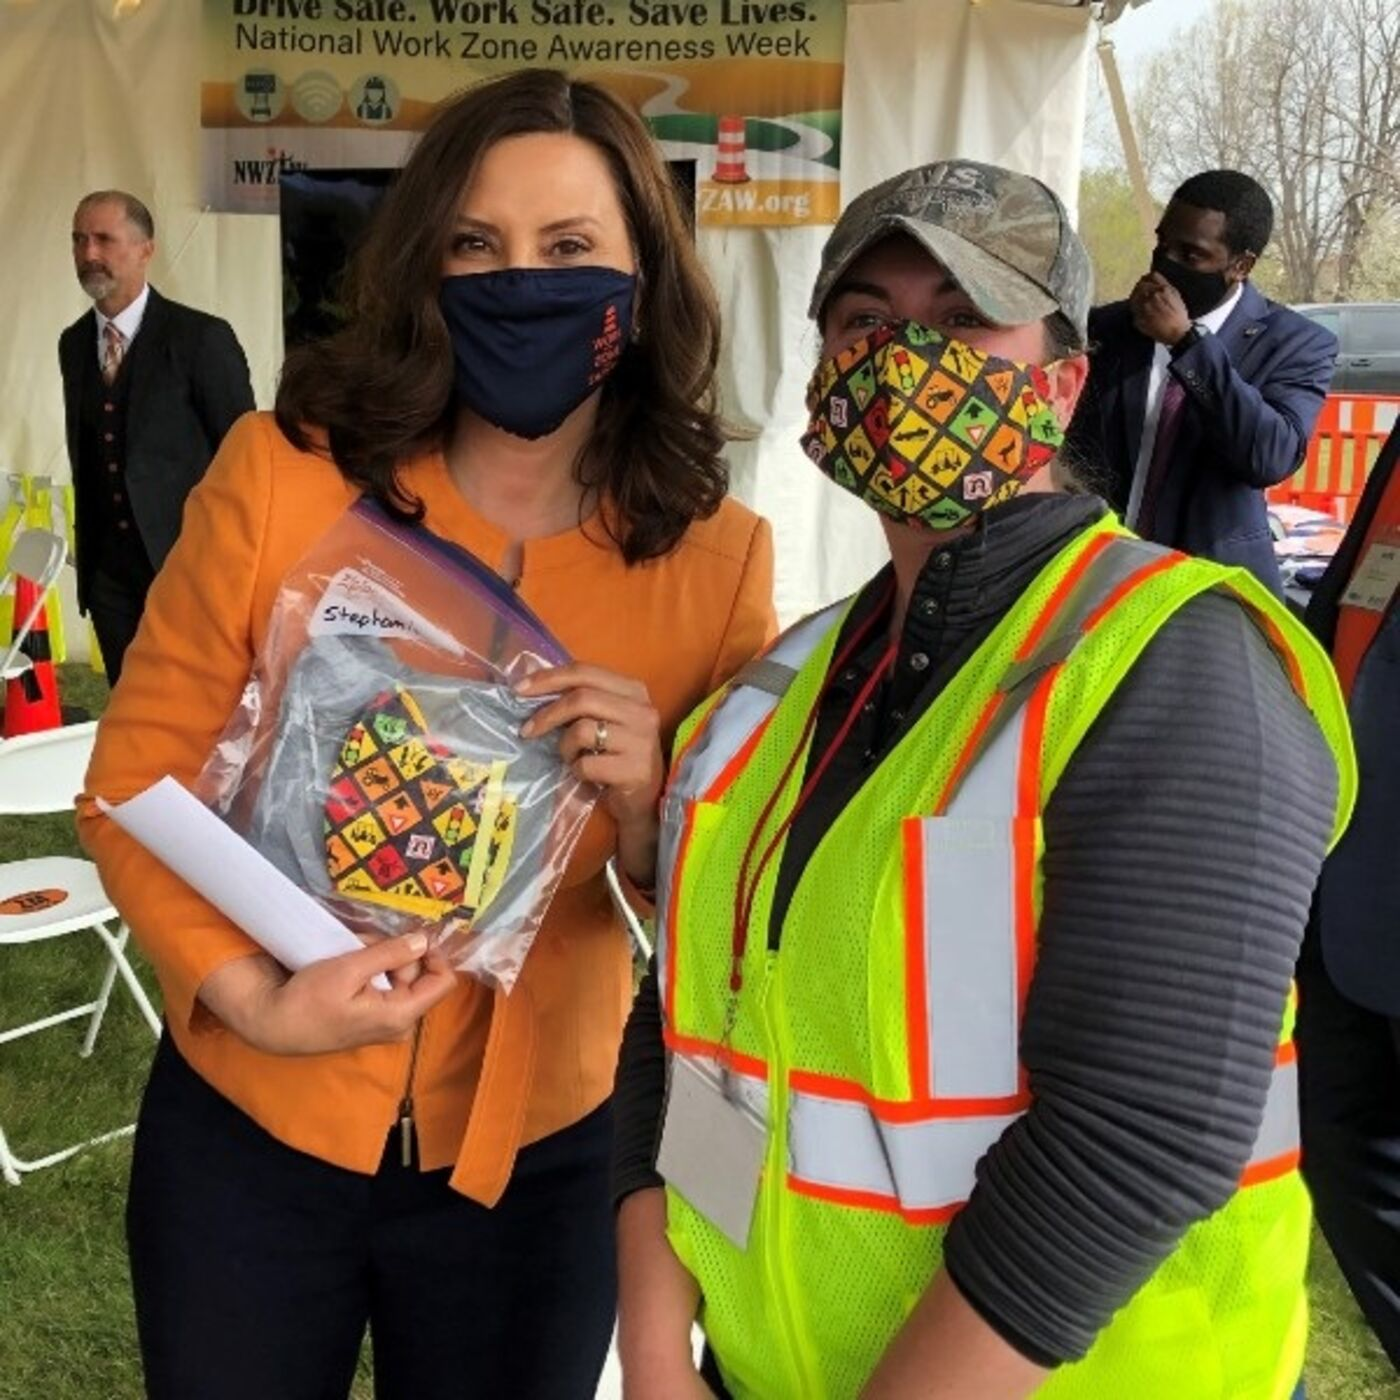 Michigan hosts national work zone safety event - one advocate's motivation